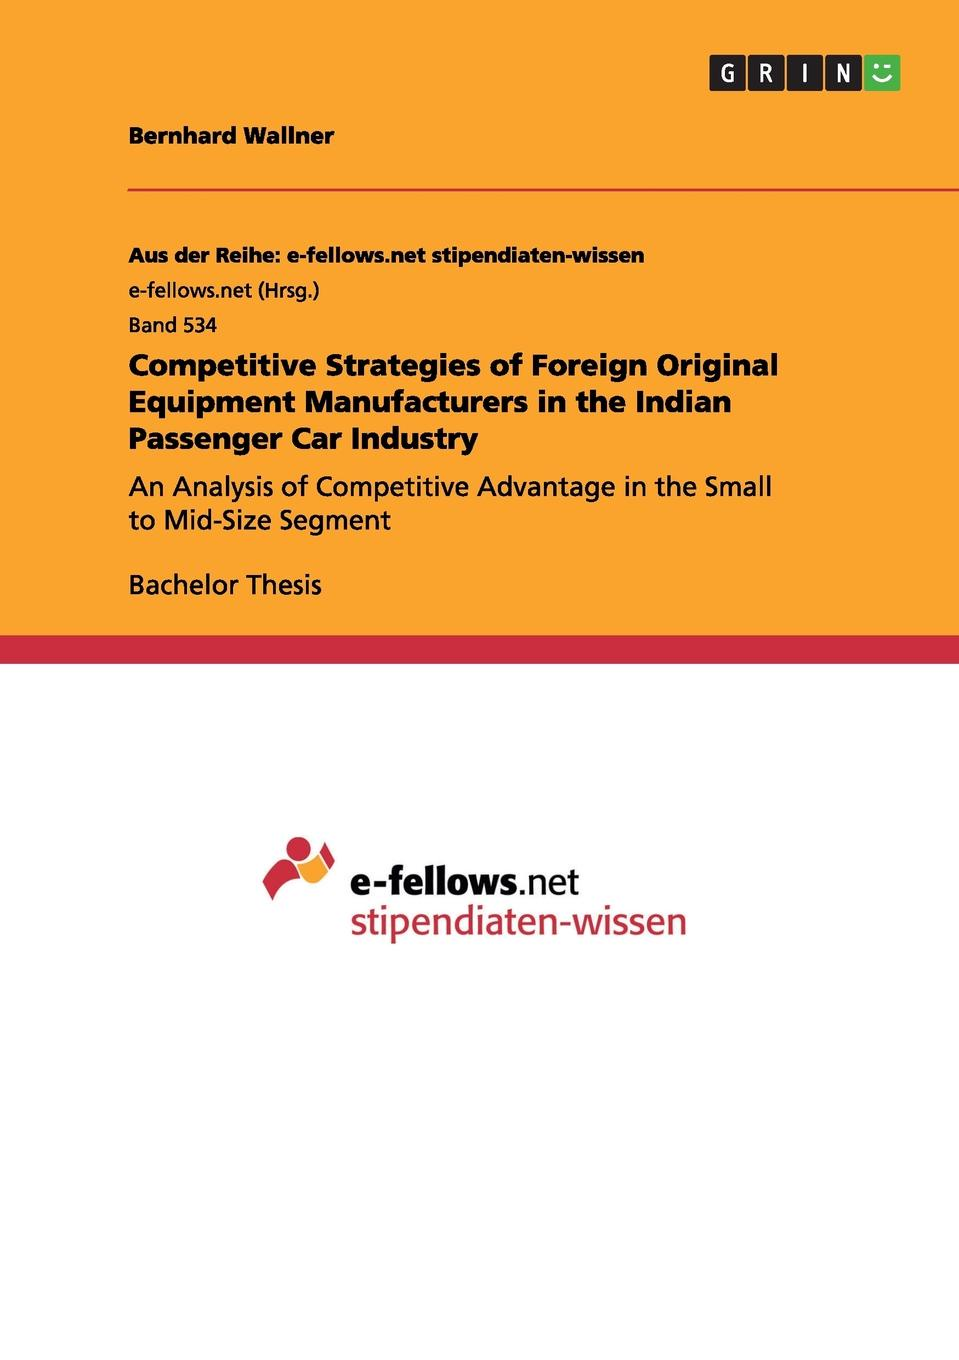 Bernhard Wallner Competitive Strategies of Foreign Original Equipment Manufacturers in the Indian Passenger Car Industry avlonas nikos practical sustainability strategies how to gain a competitive advantage